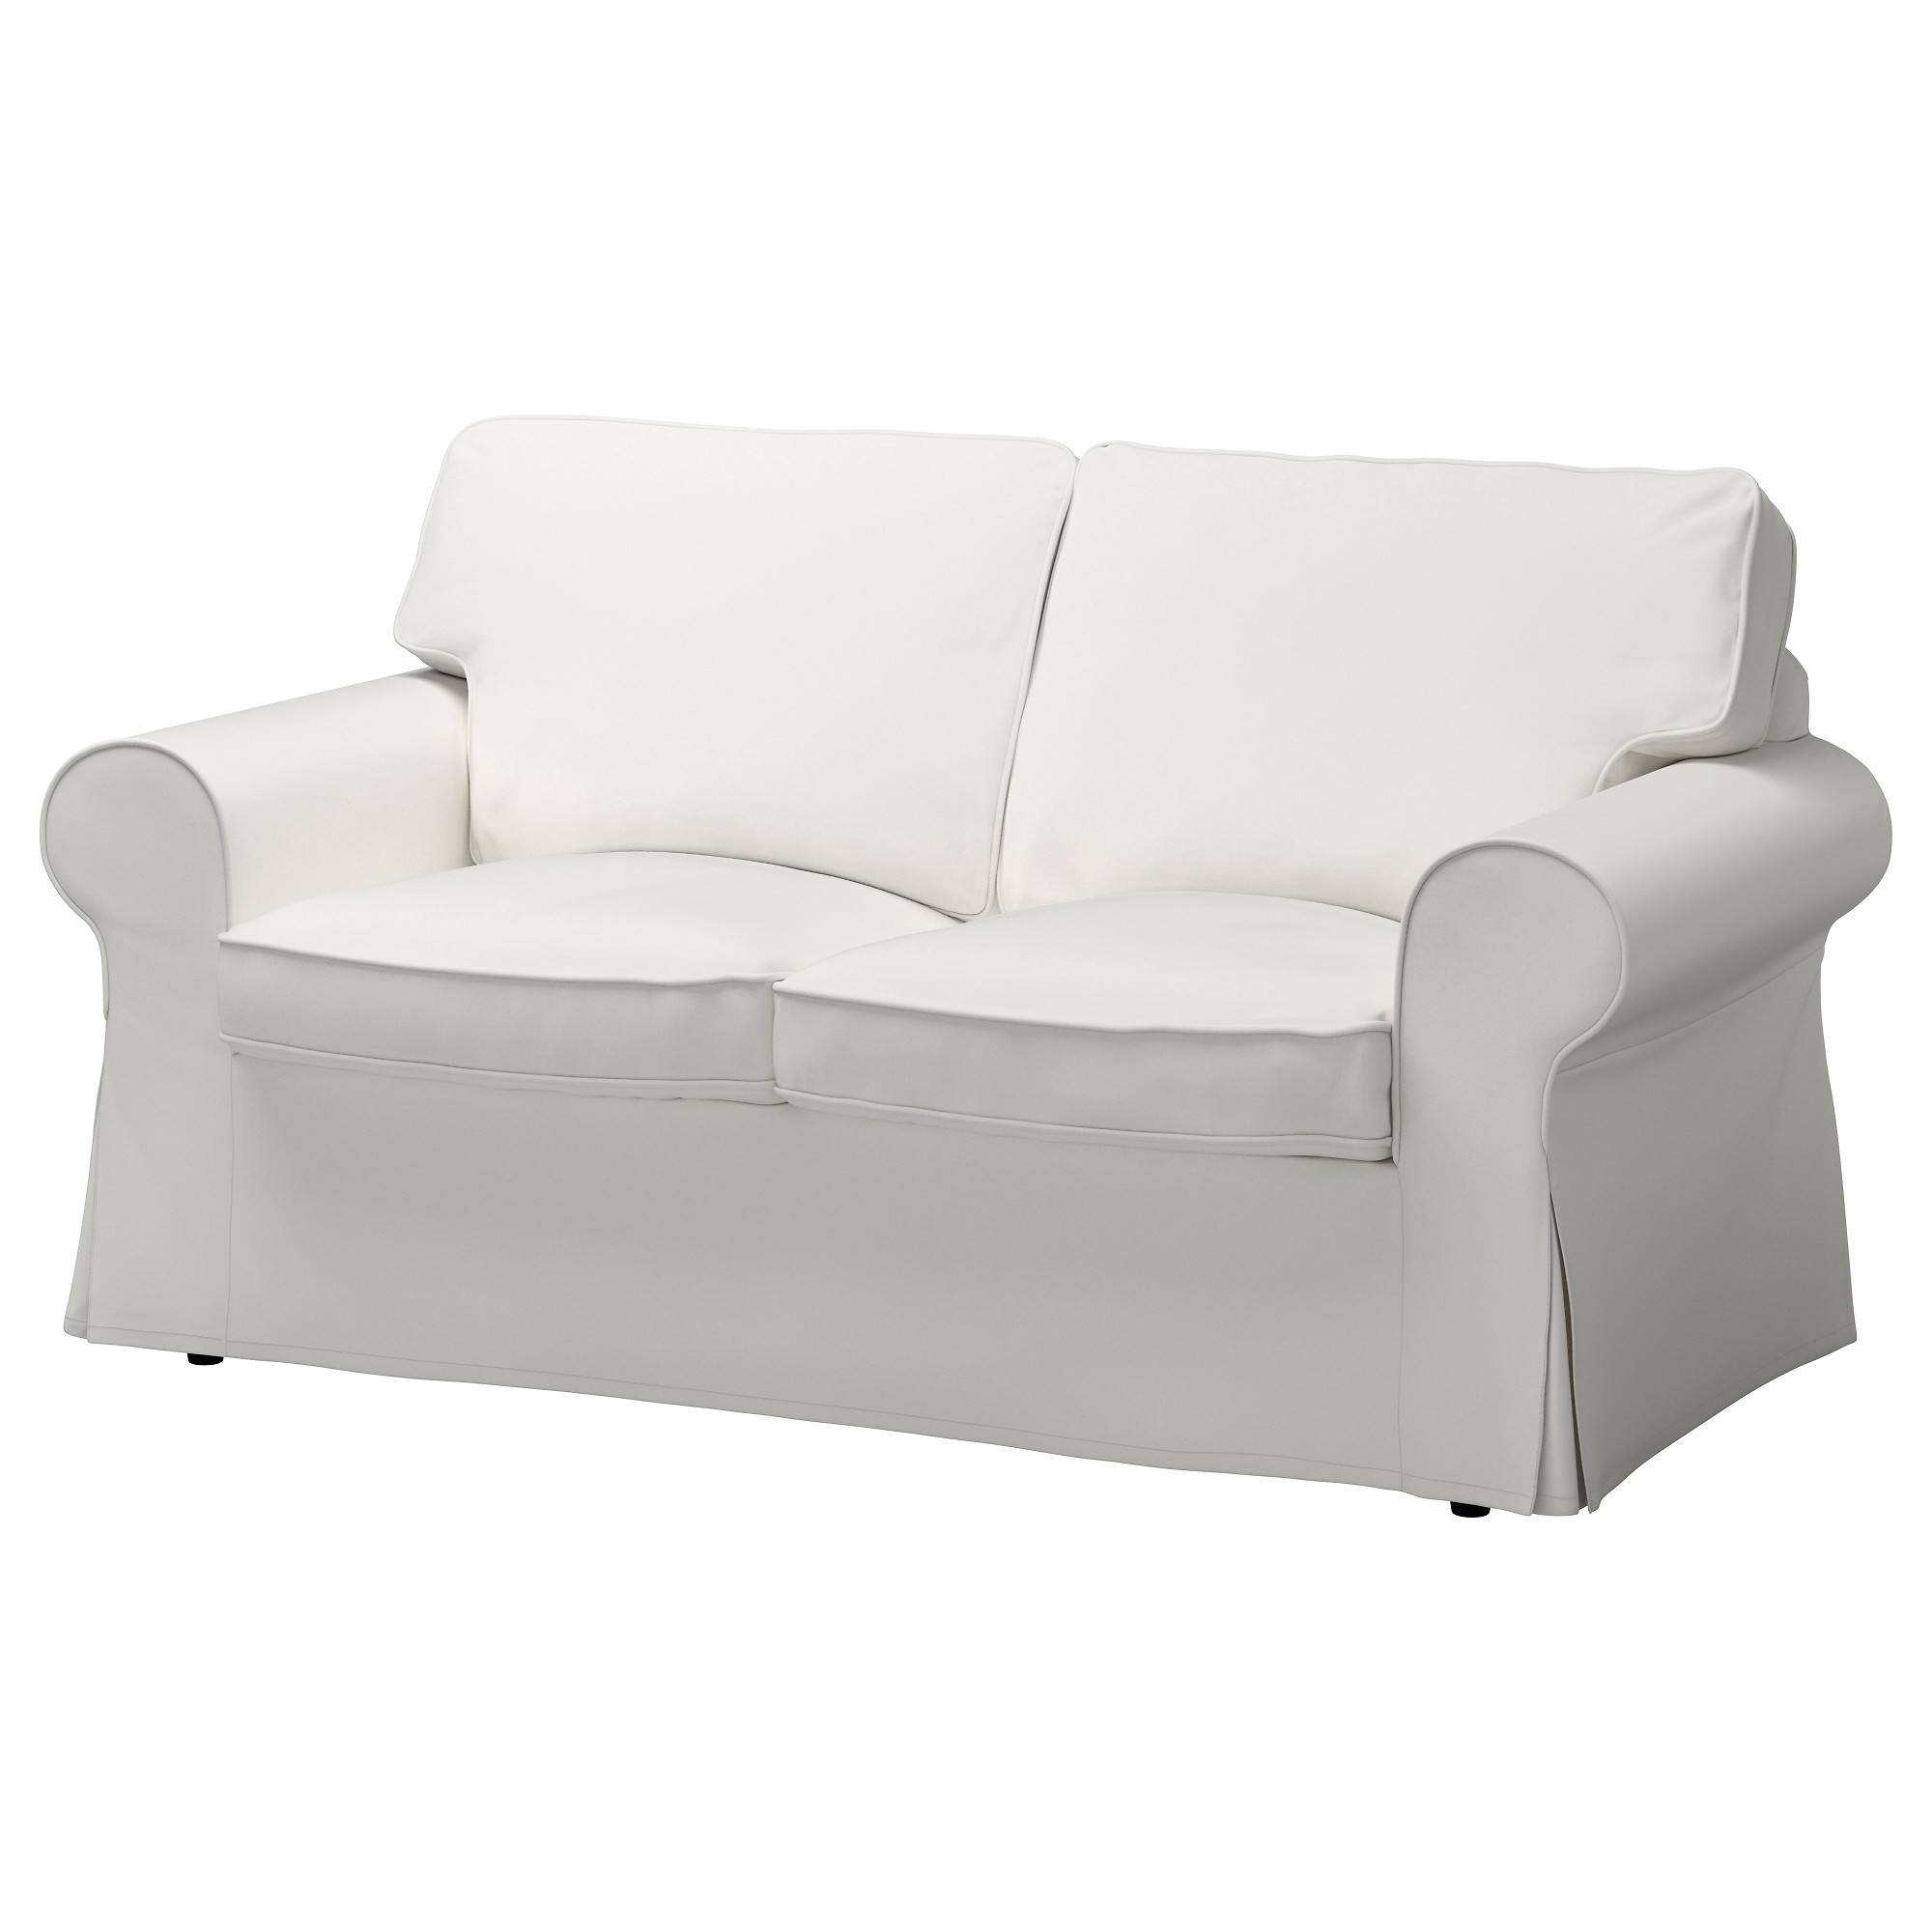 loveseat small unique room for bed living house beds white your concept intended sofa